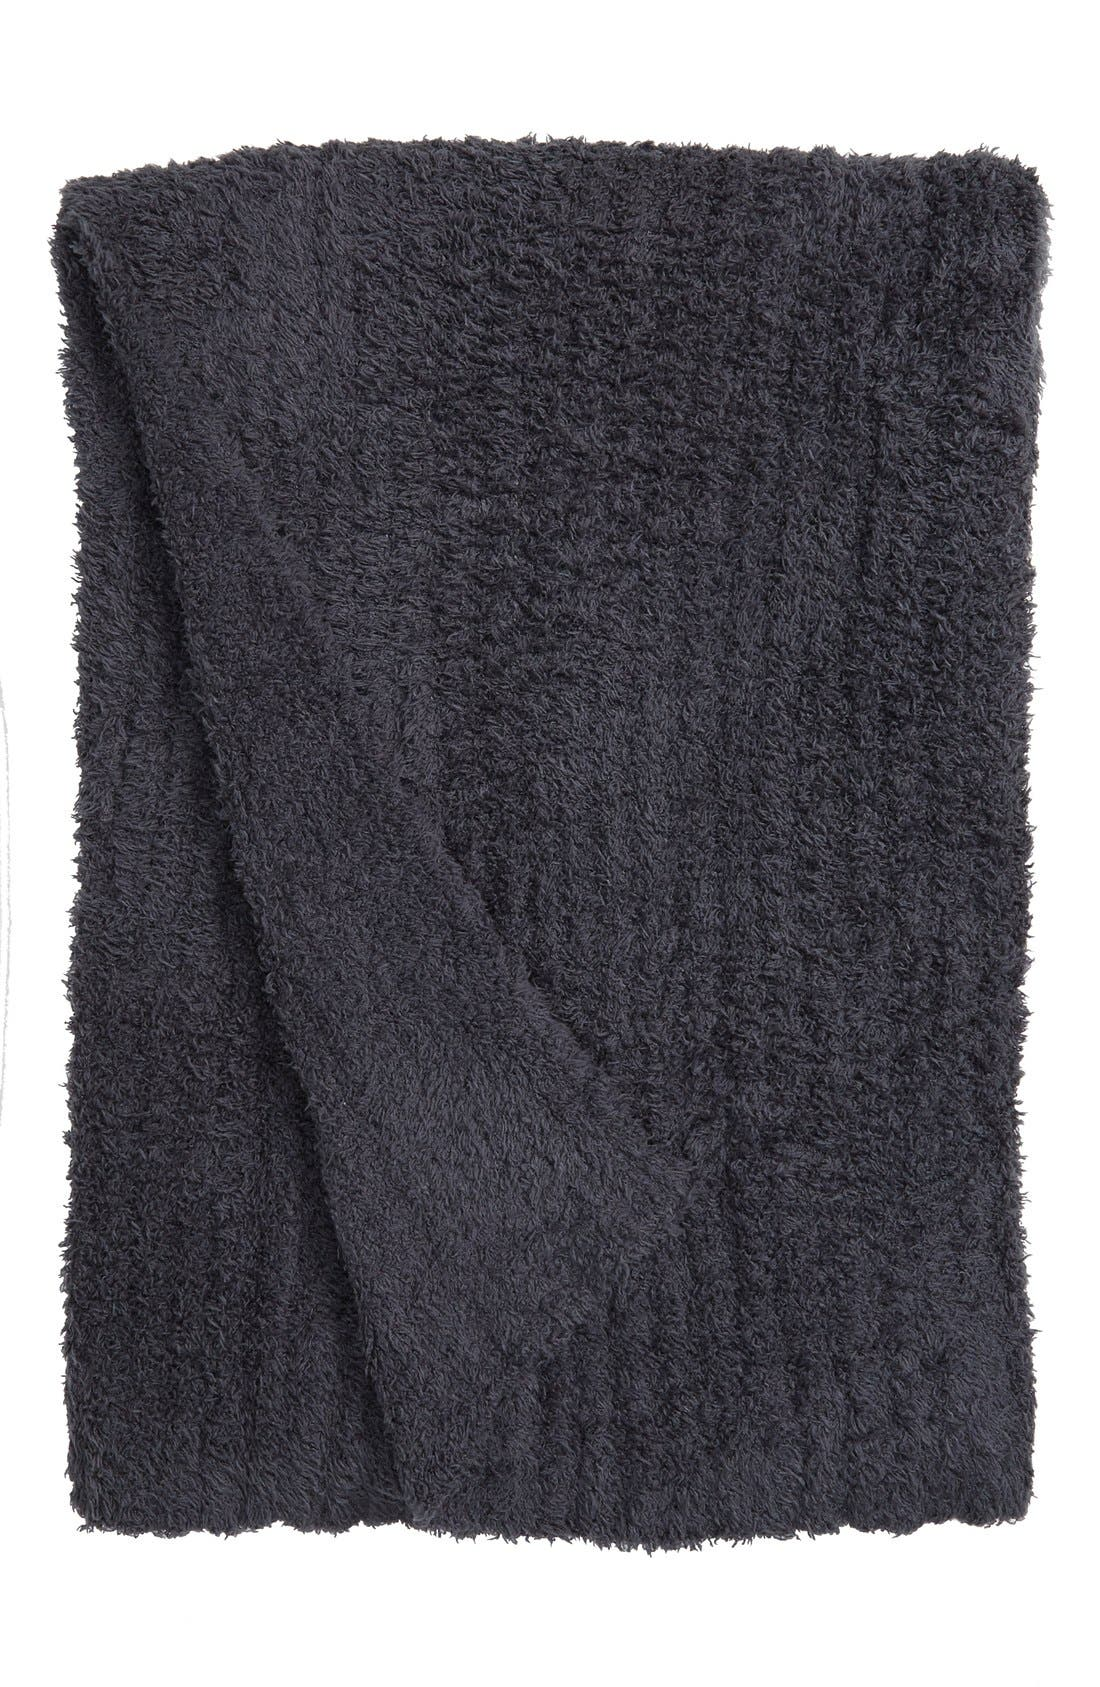 Alternate Image 1 Selected - Barefoot Dreams® 'CozyChic®' Ribbed Throw